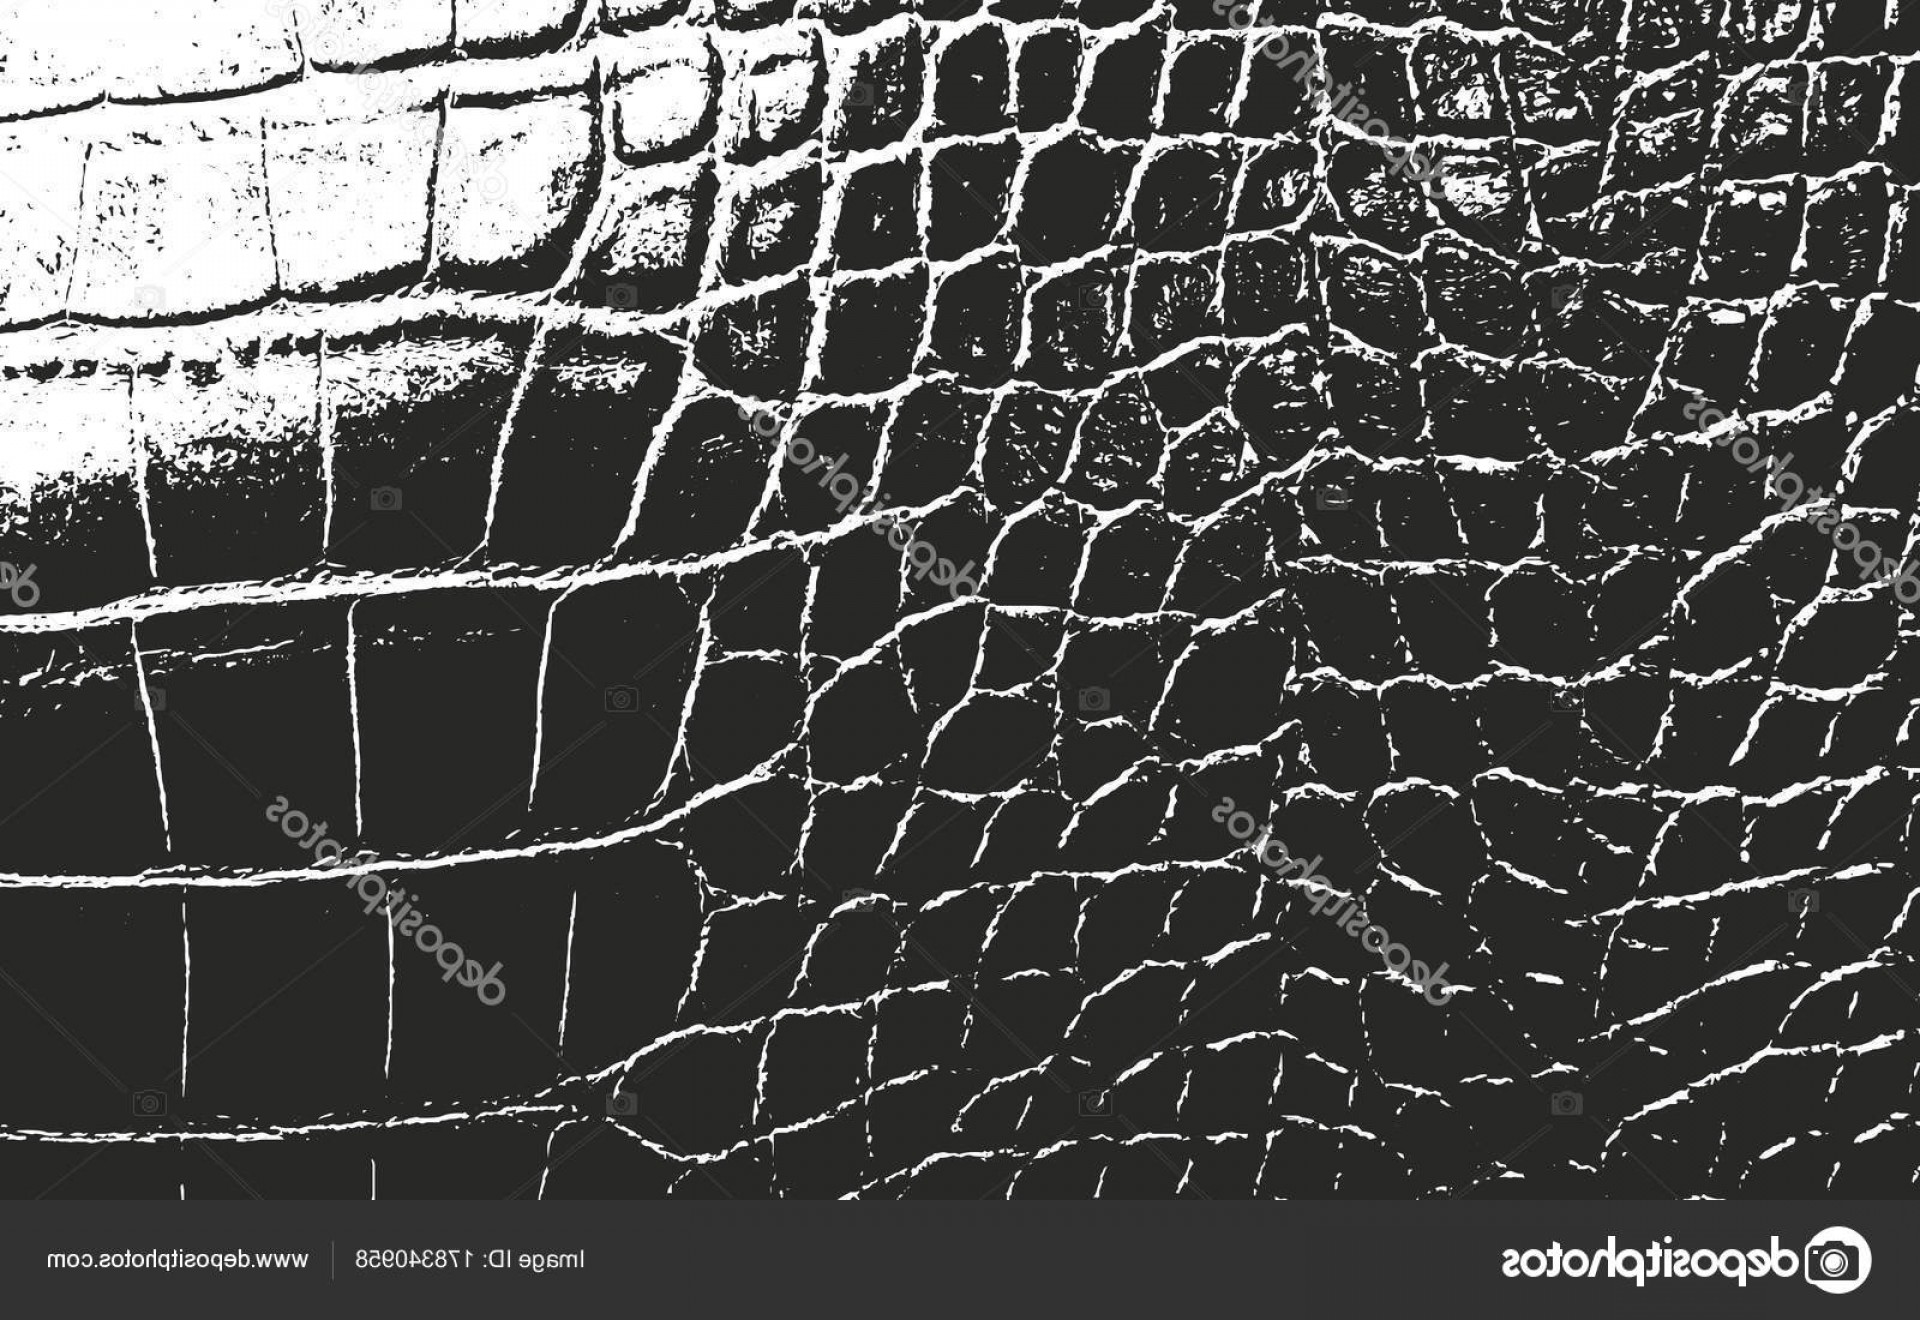 Alligator Skin Texture Vector: Stock Illustration Distressed Overlay Animal Skin Texture